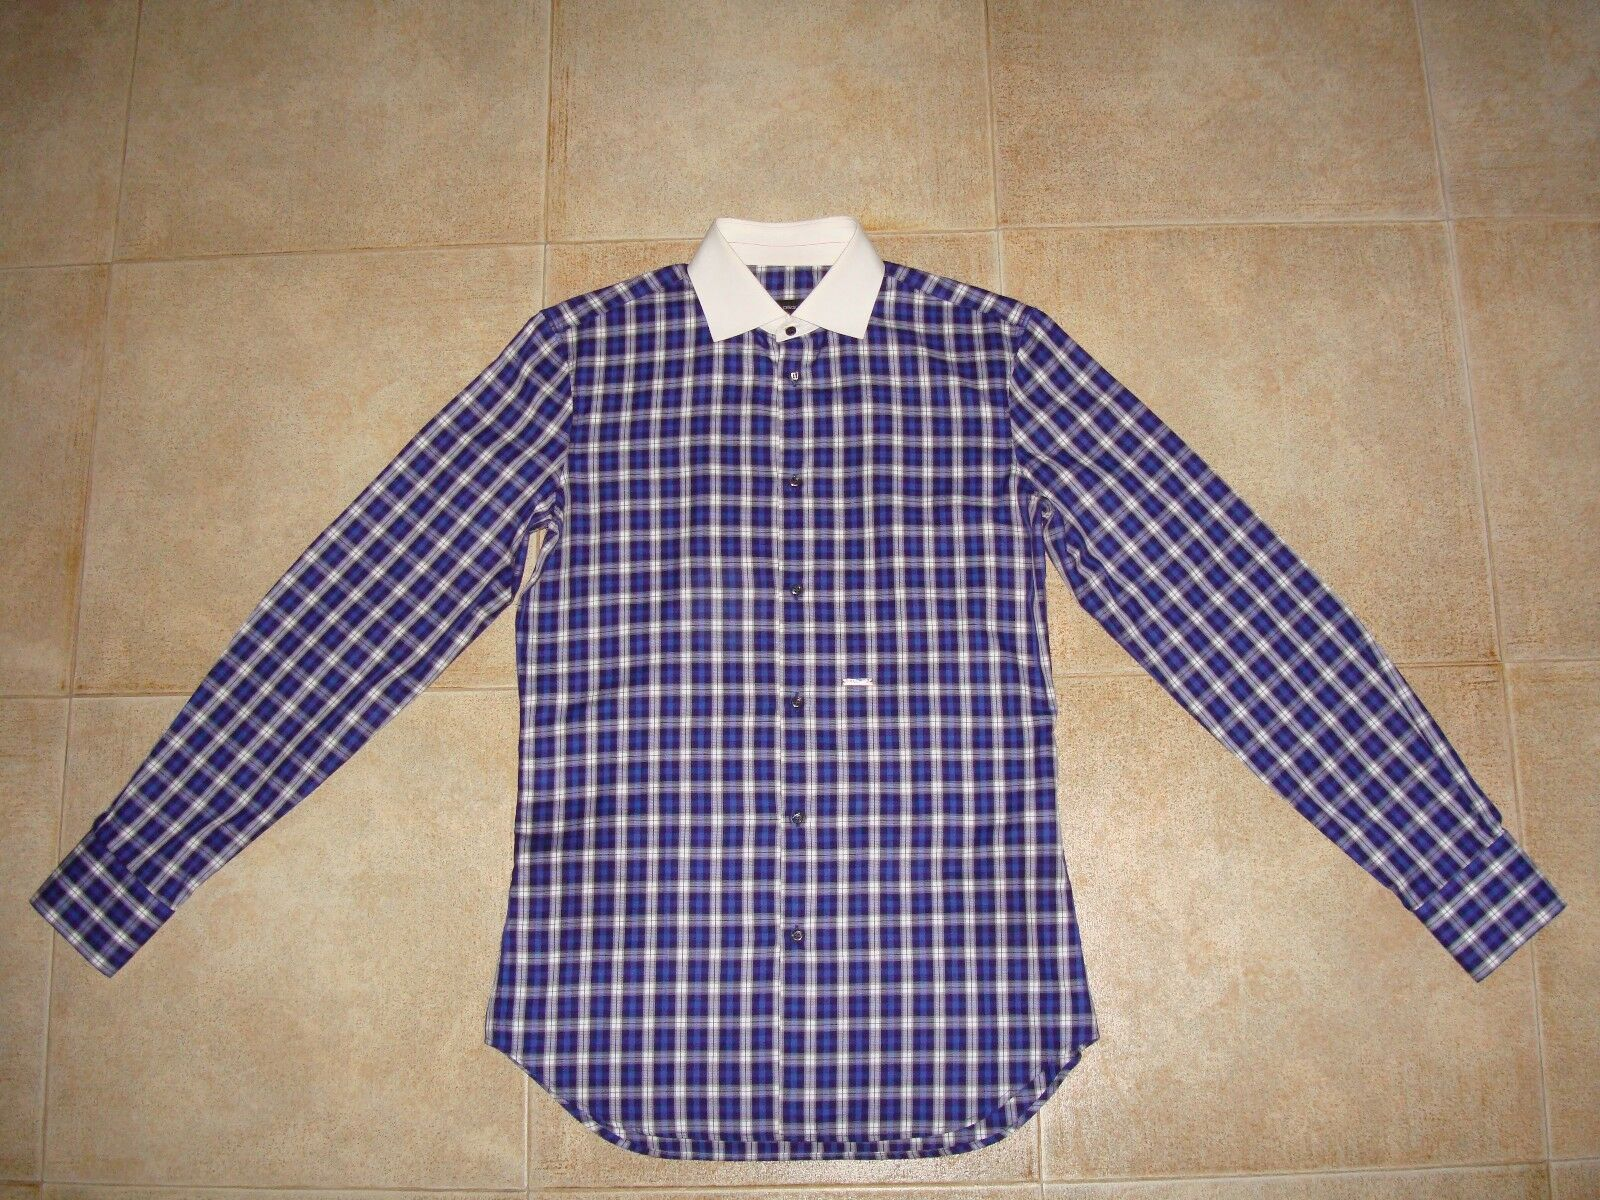 Dsquarot² Runway METAL LOGO Checked hemd 50 IT FW 09-10 71DL254  Made in IT